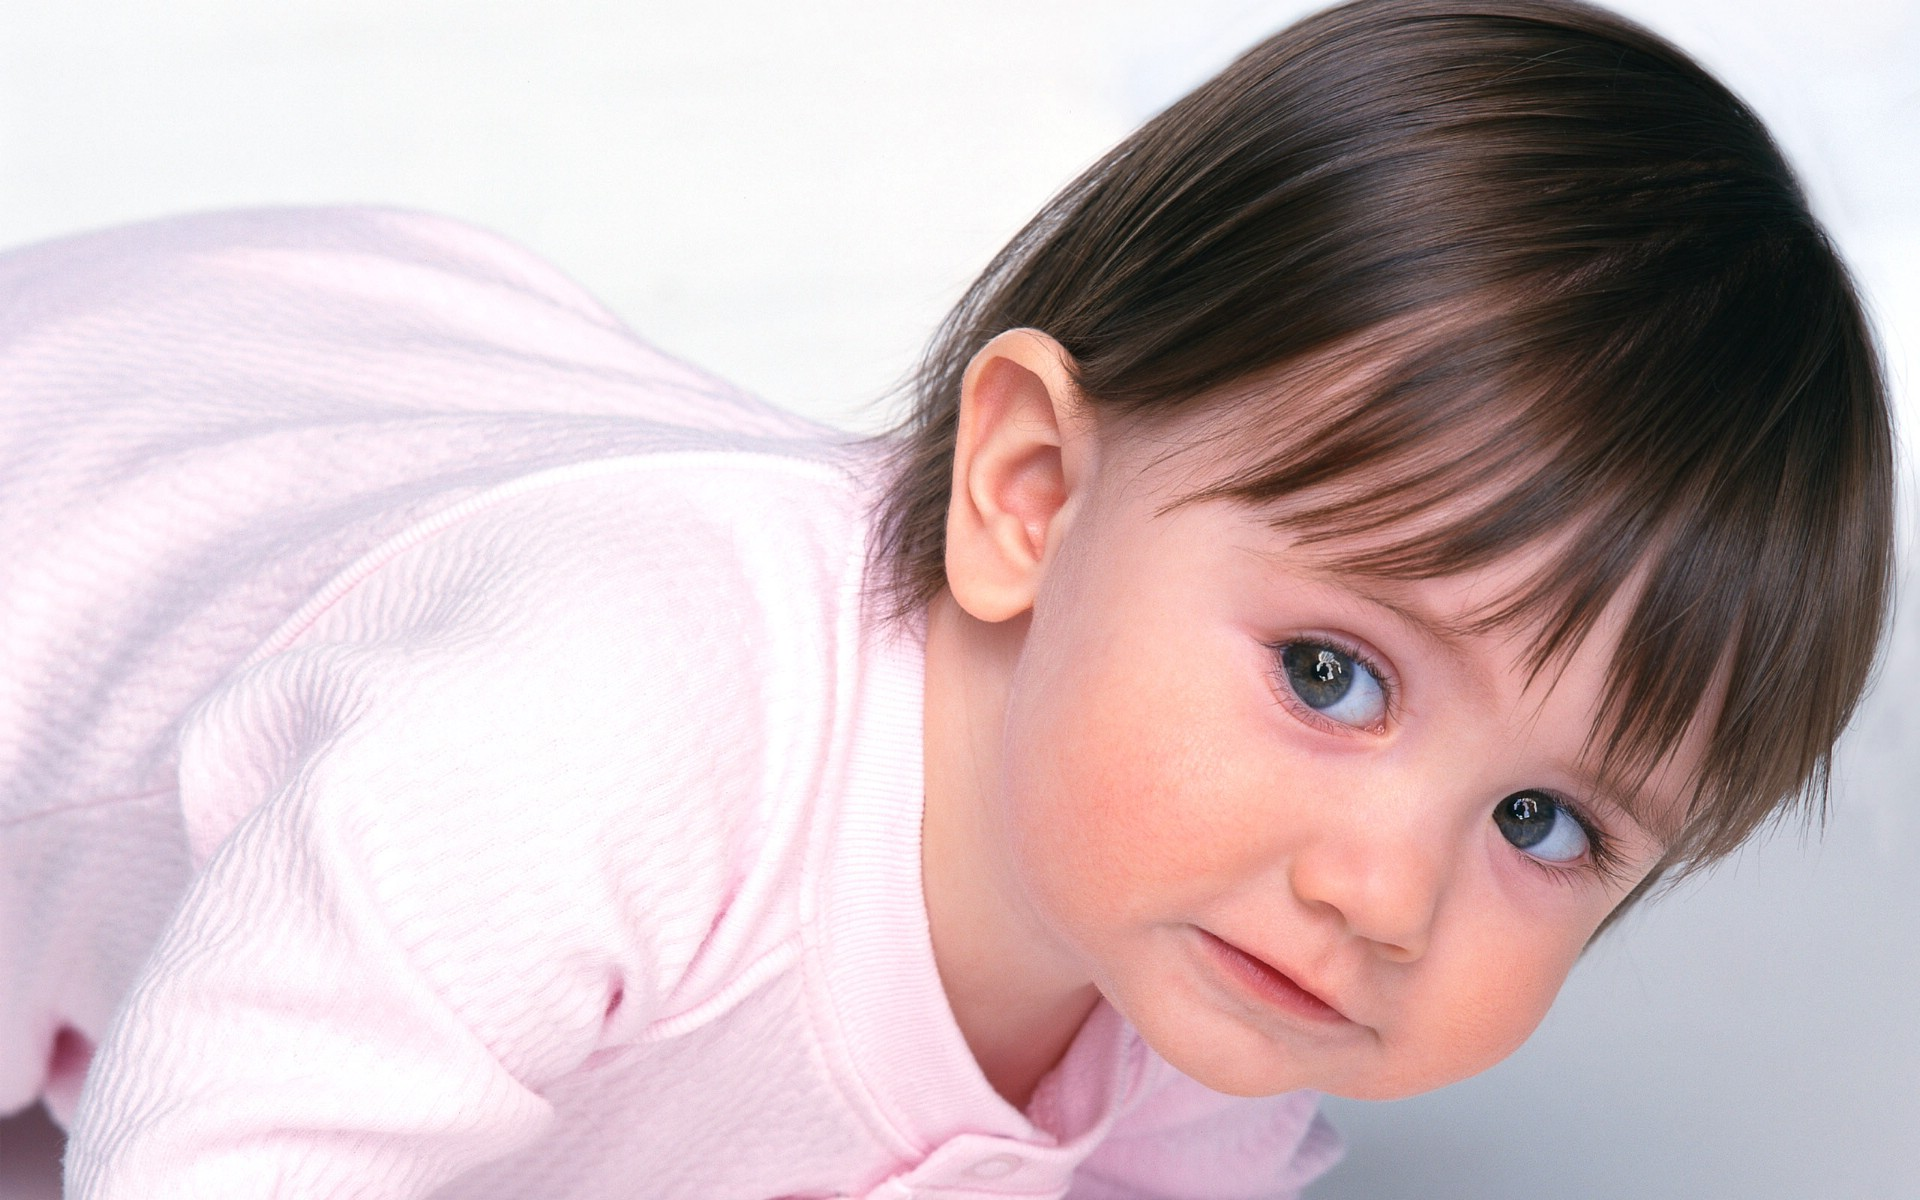 Cute baby Wide HD Wallpapers HD Wallpapers 1920x1200